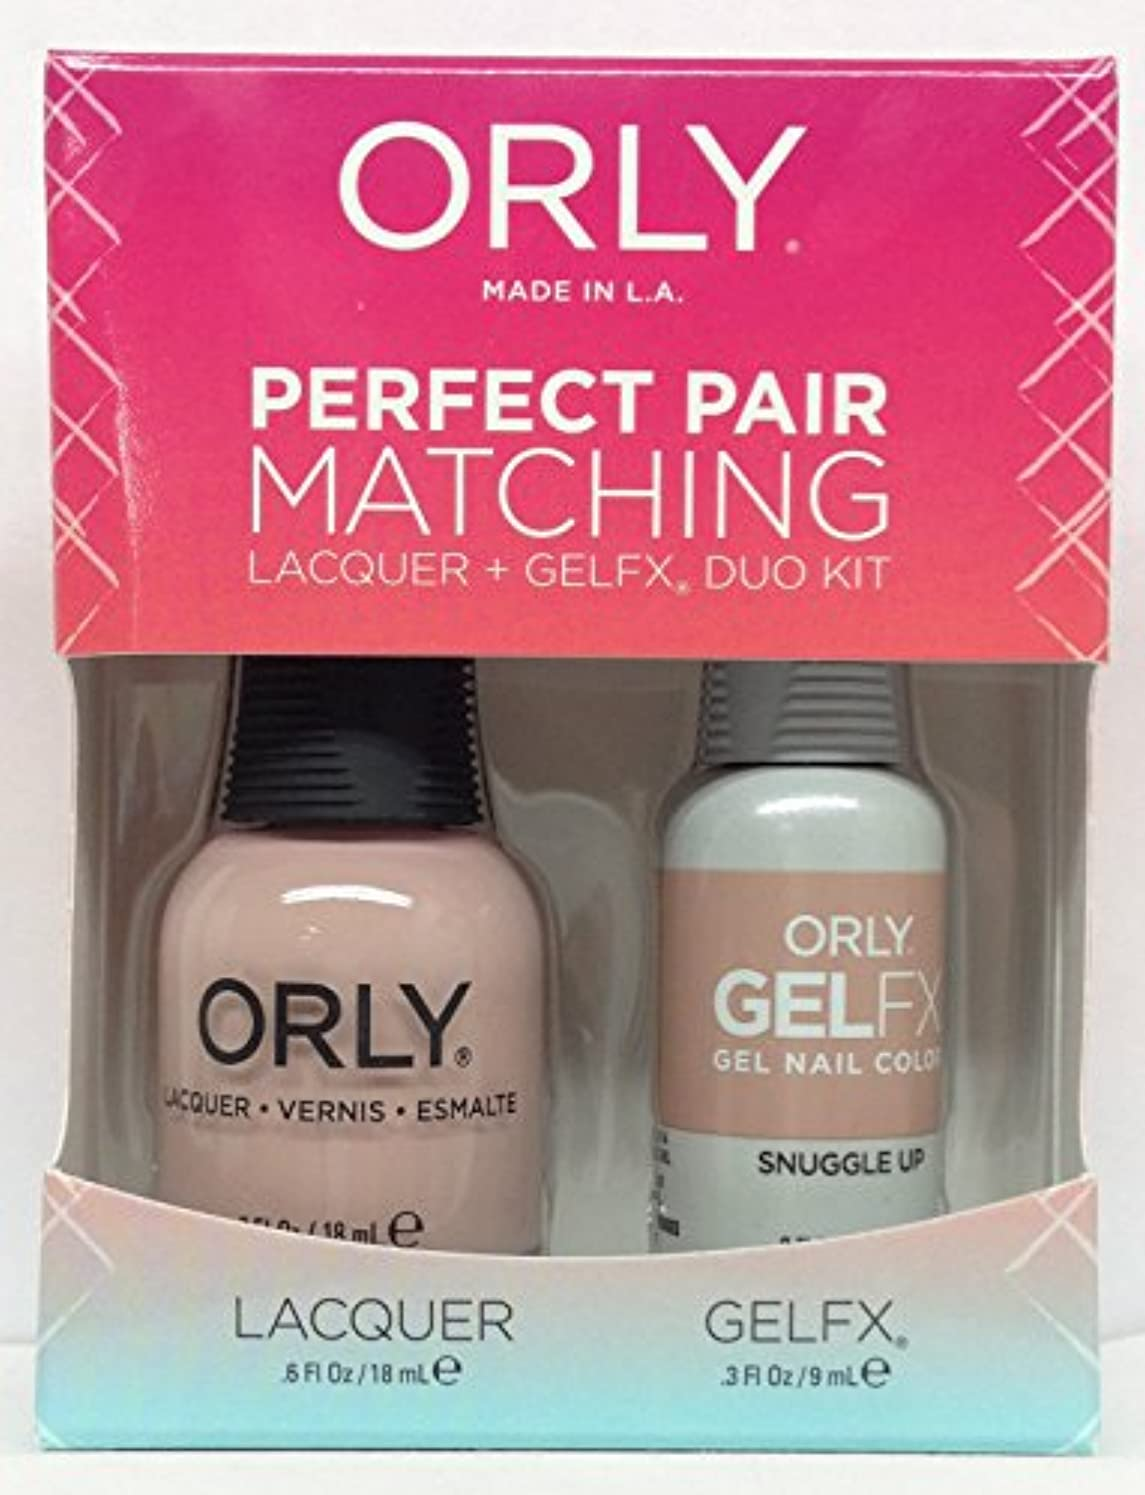 論争的木スーダンOrly - Perfect Pair Matching Lacquer + GelFX Kit - Snuggle Up - 0.6 oz / 0.3 oz